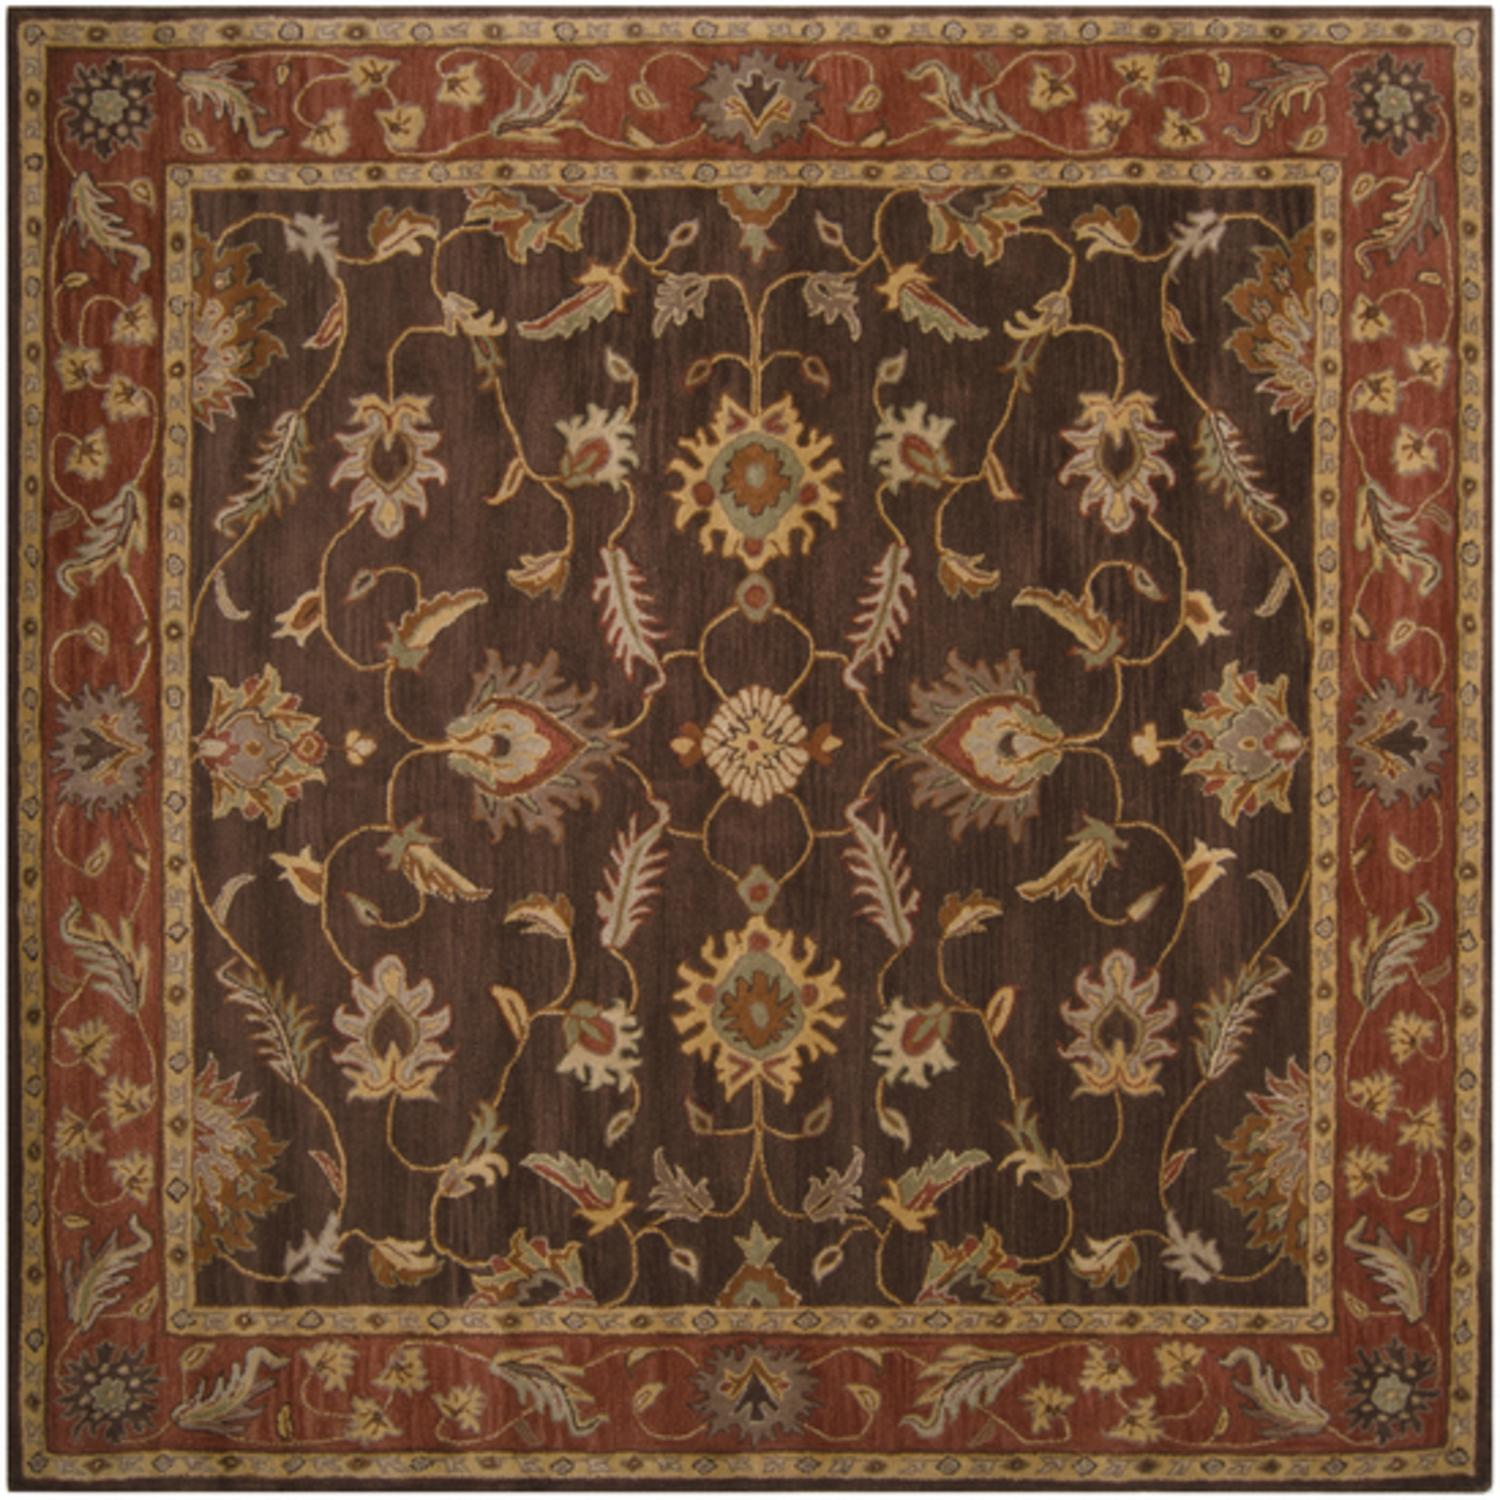 9.75' x 9.75' Anethancian Driftwood Brown & Red Clay Hand Tufted Wool Area Rug